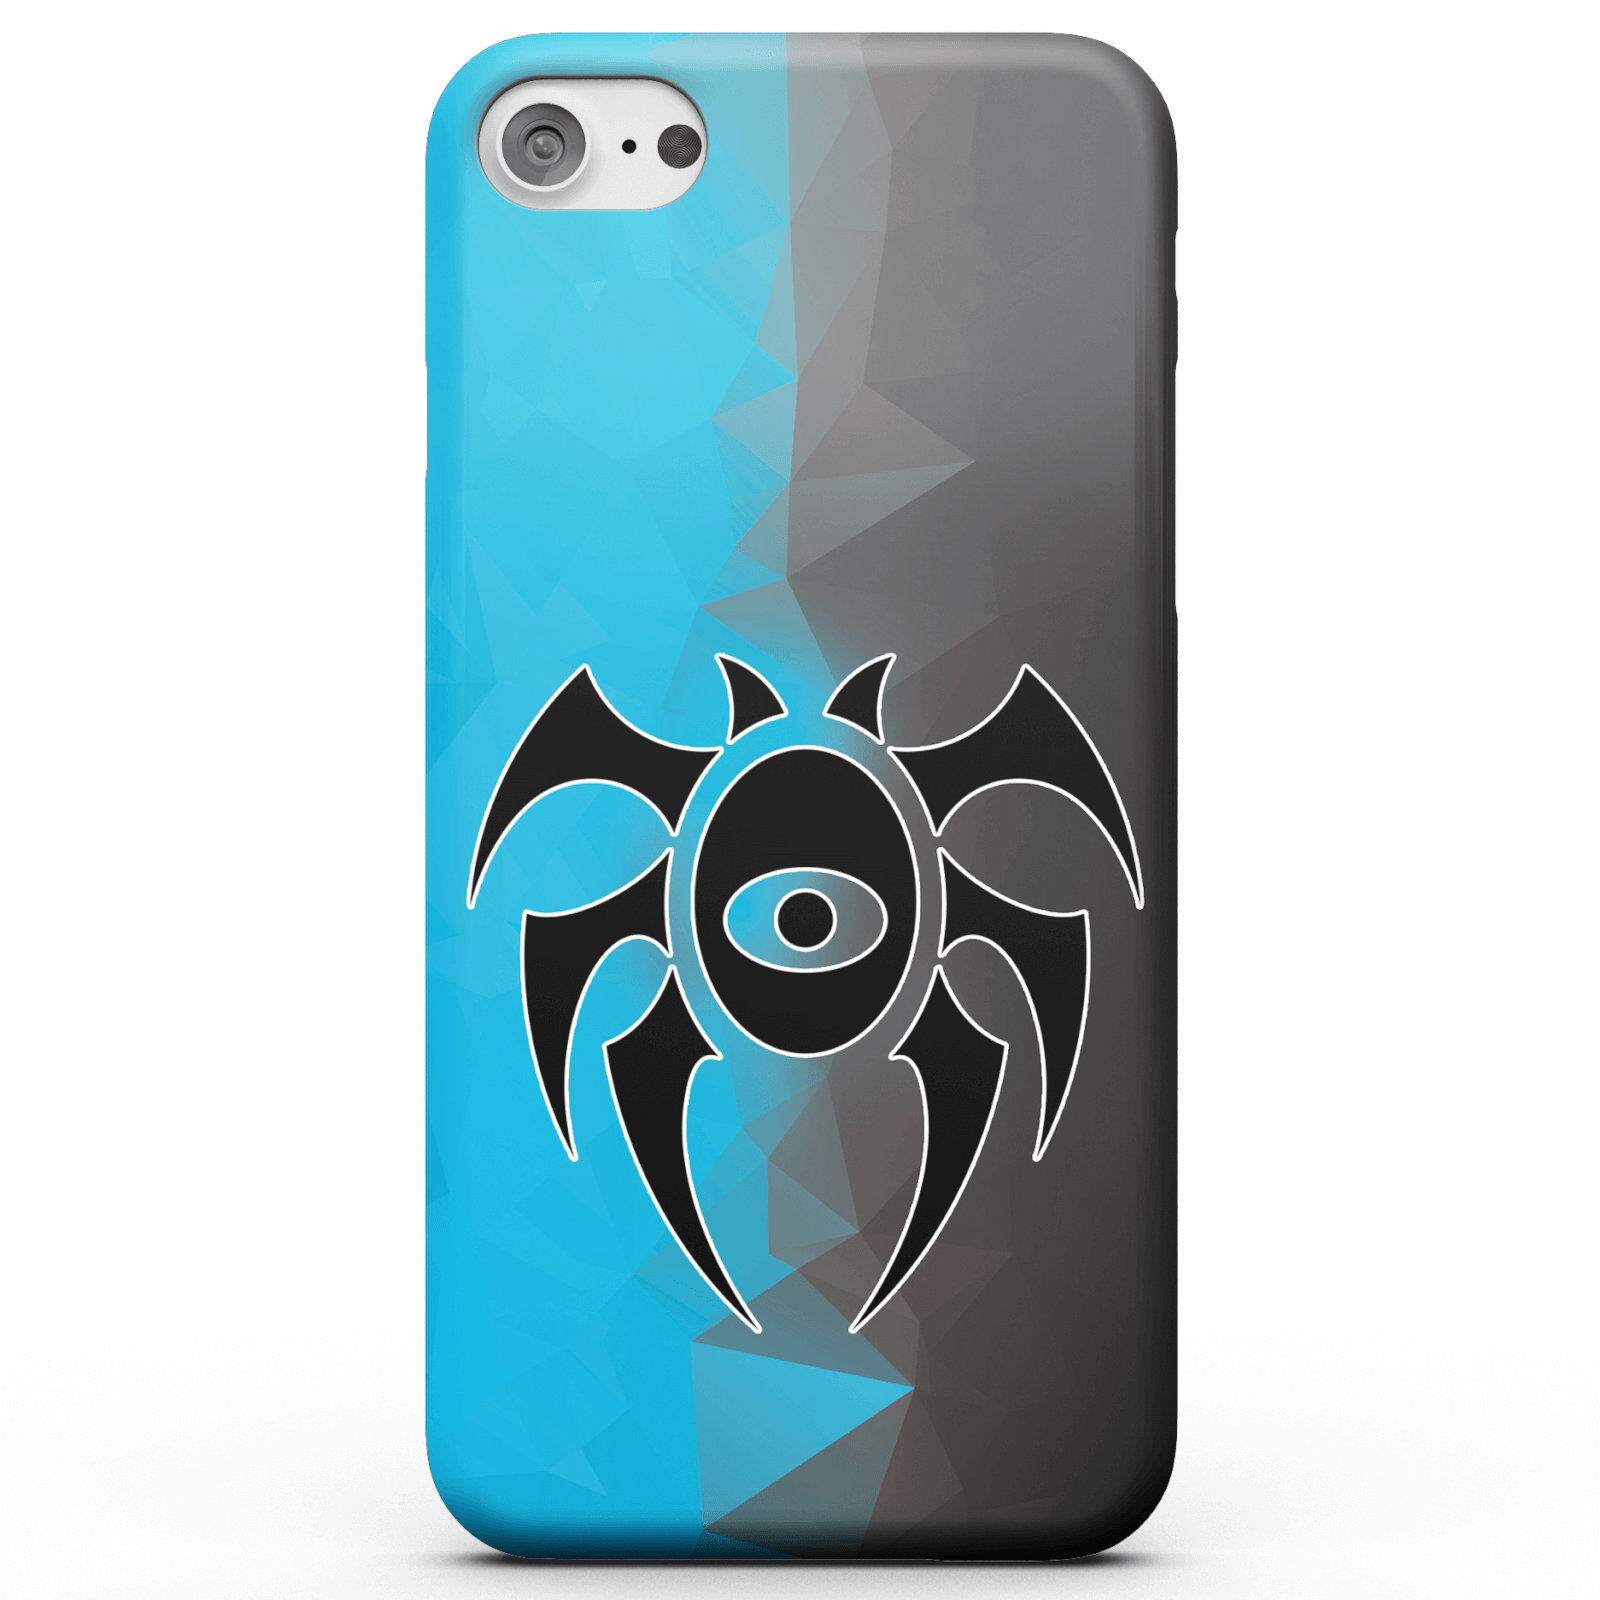 Funda Móvil Magic The Gathering Dimir para iPhone y Android - iPhone X - Carcasa rígida - Mate de Magic The Gathering